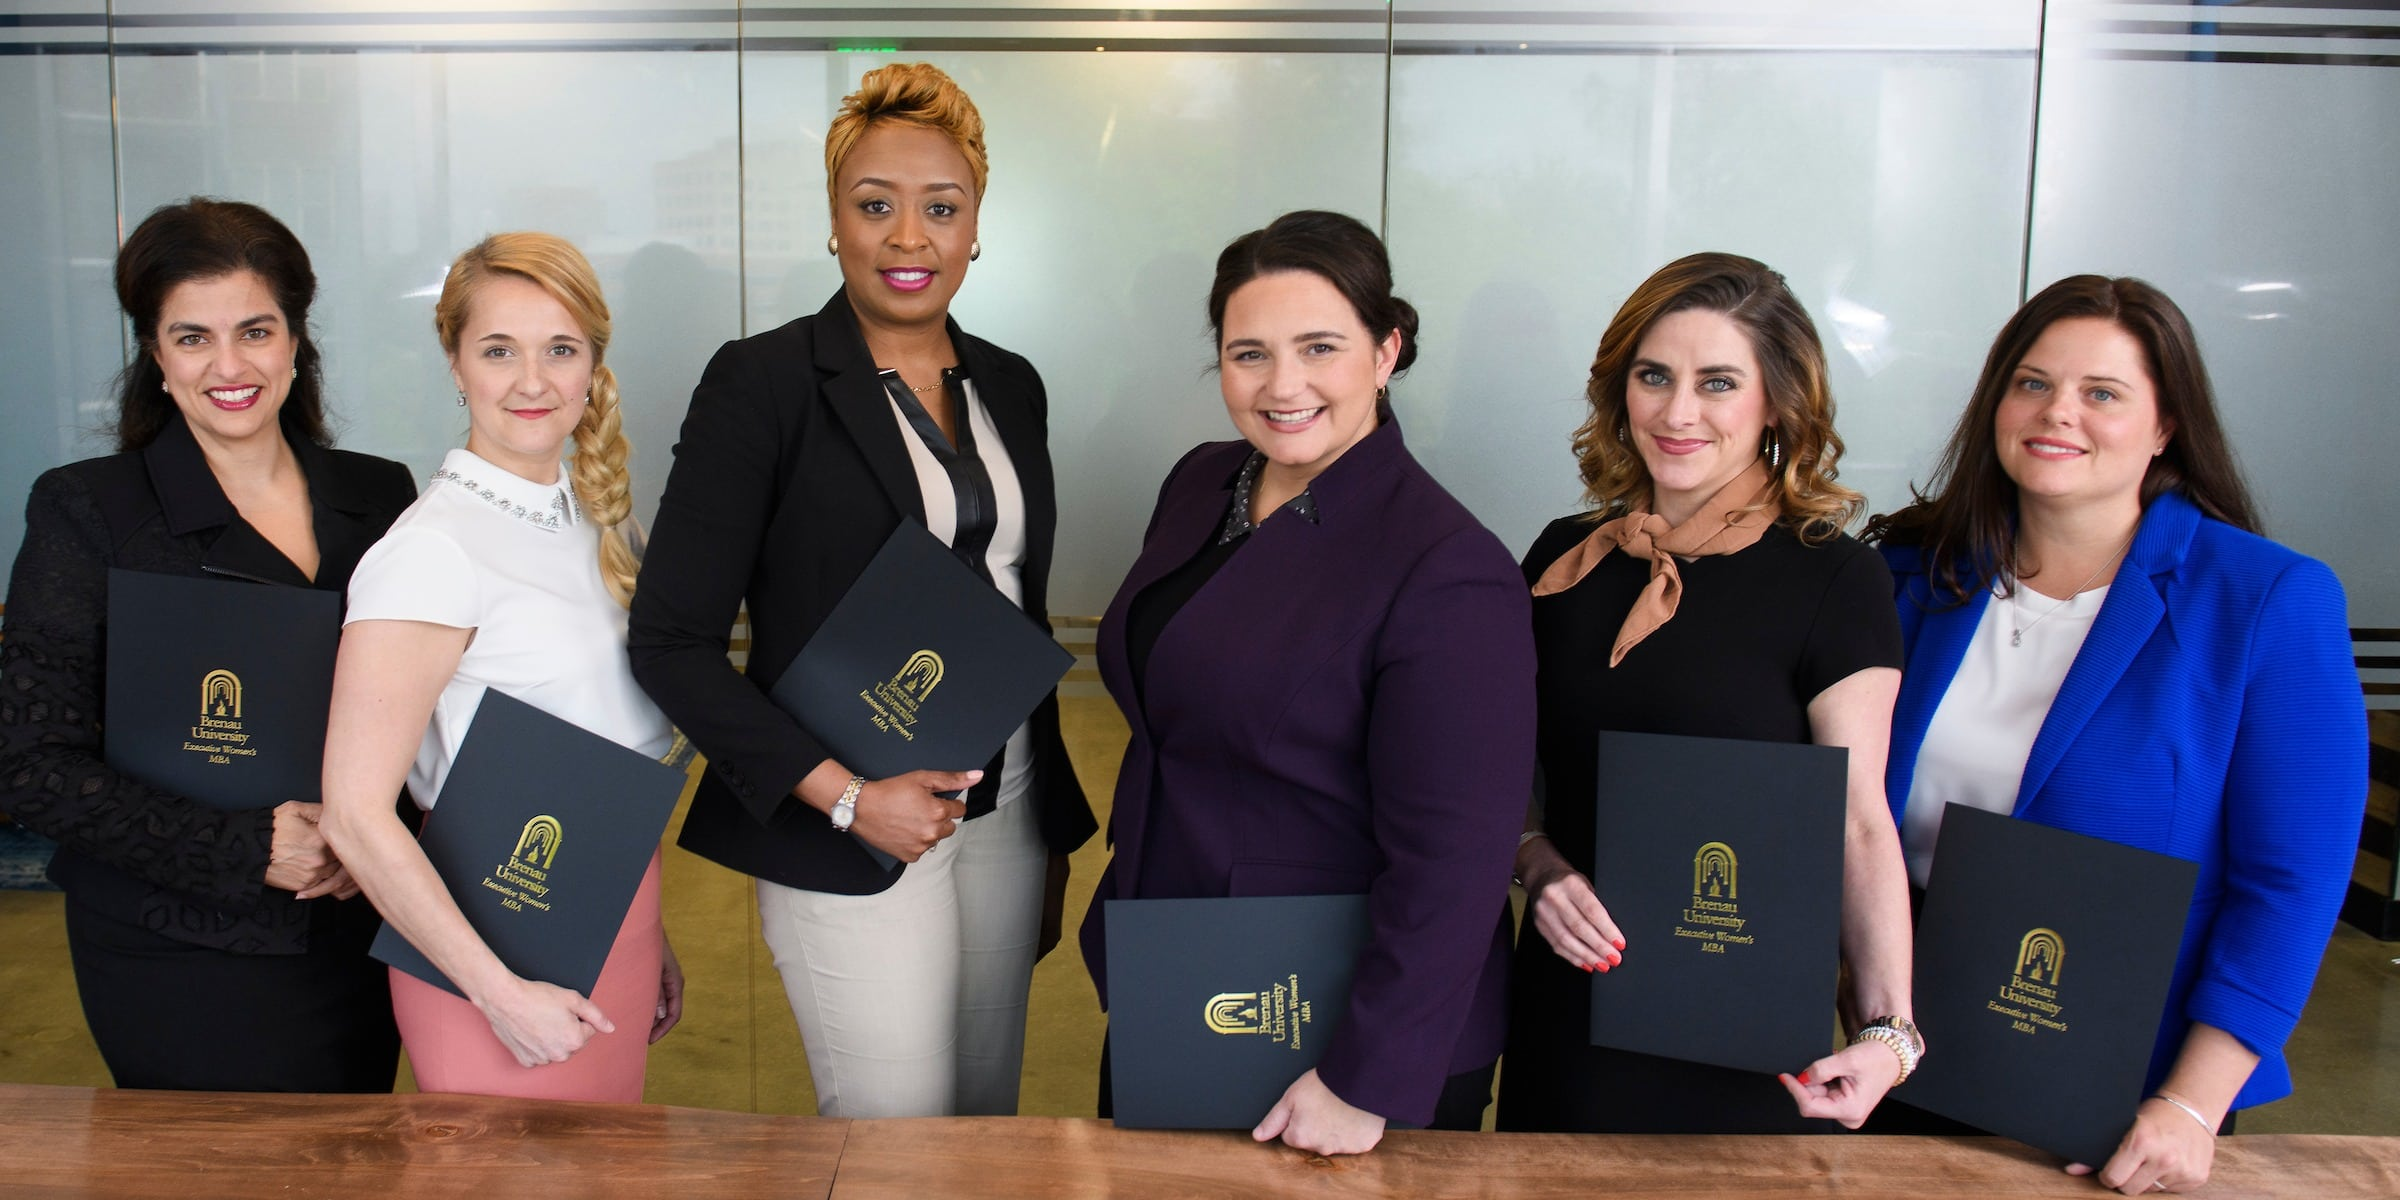 Row of professional, women executives holding folders with Brenau logo